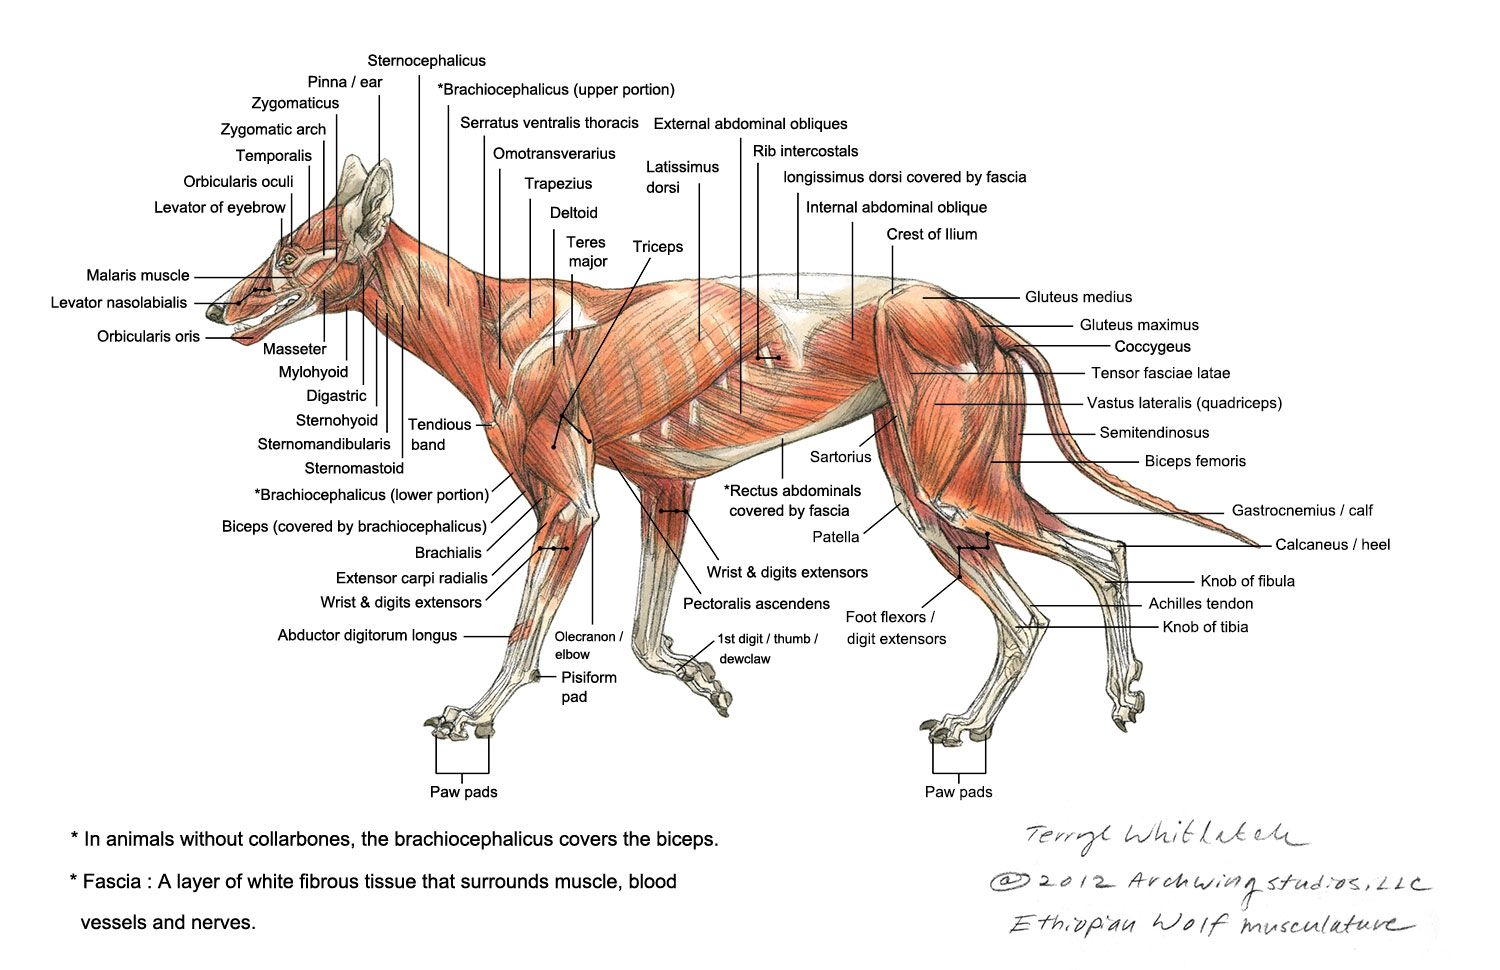 wolf muscle anatomy dog muscular system diagram wolf skeleton diagram wolf muscle [ 1500 x 970 Pixel ]